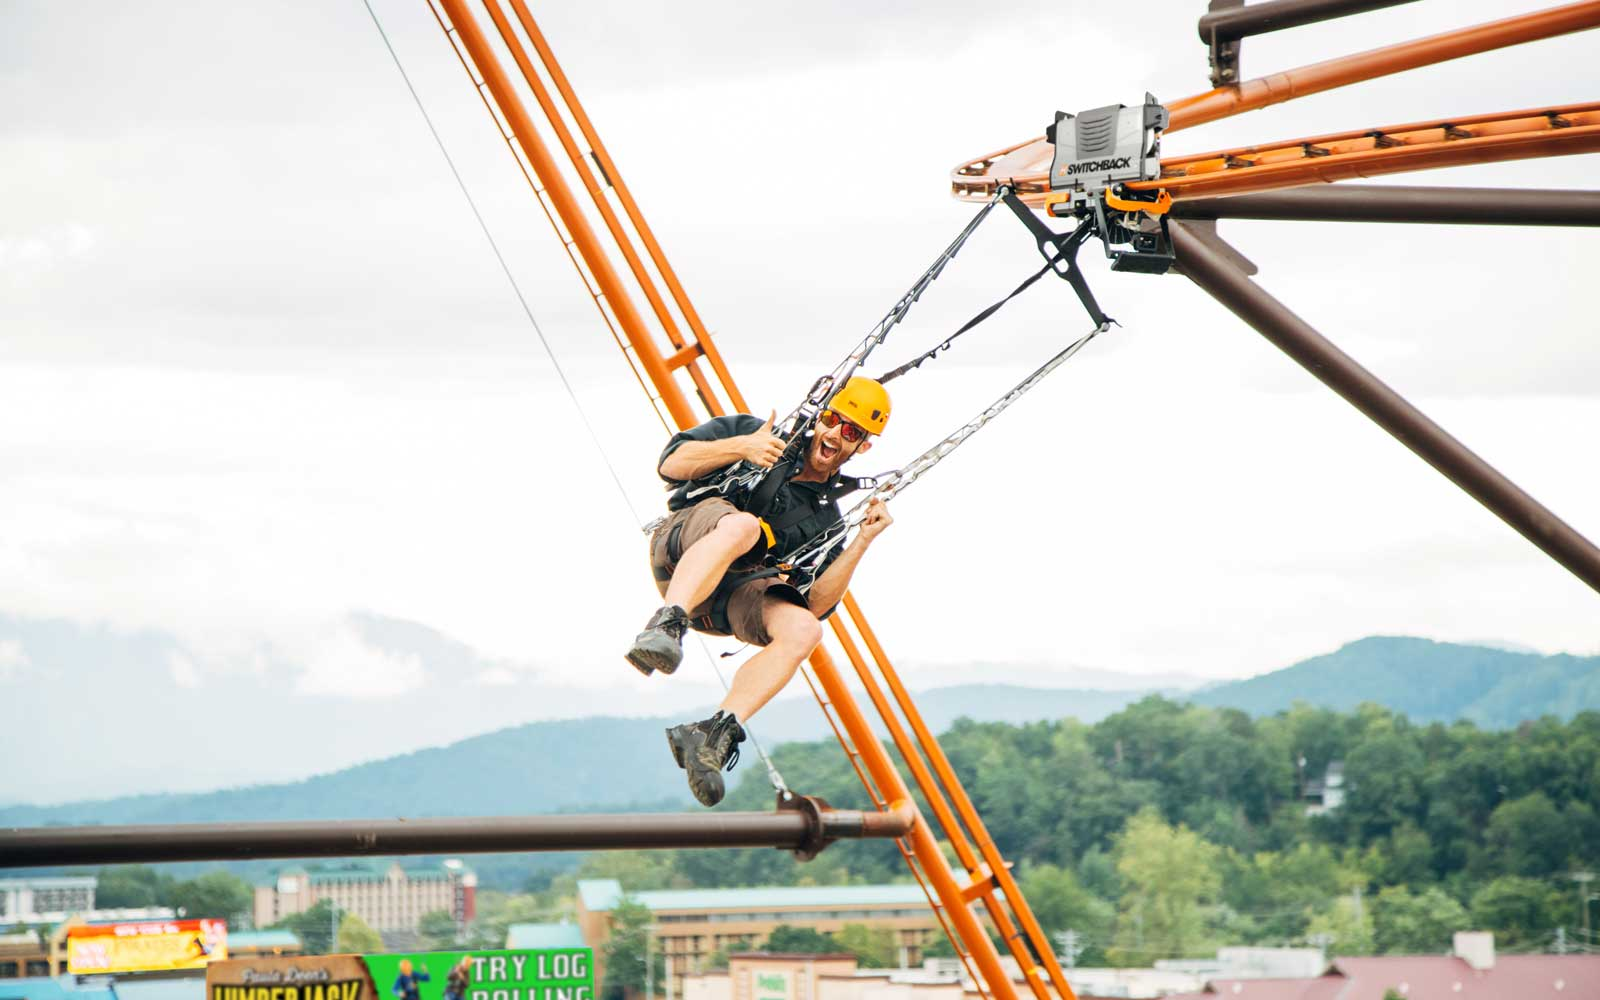 A Never-before-seen 'Zipline Roller Coaster' Just Opened in Pigeon Forge